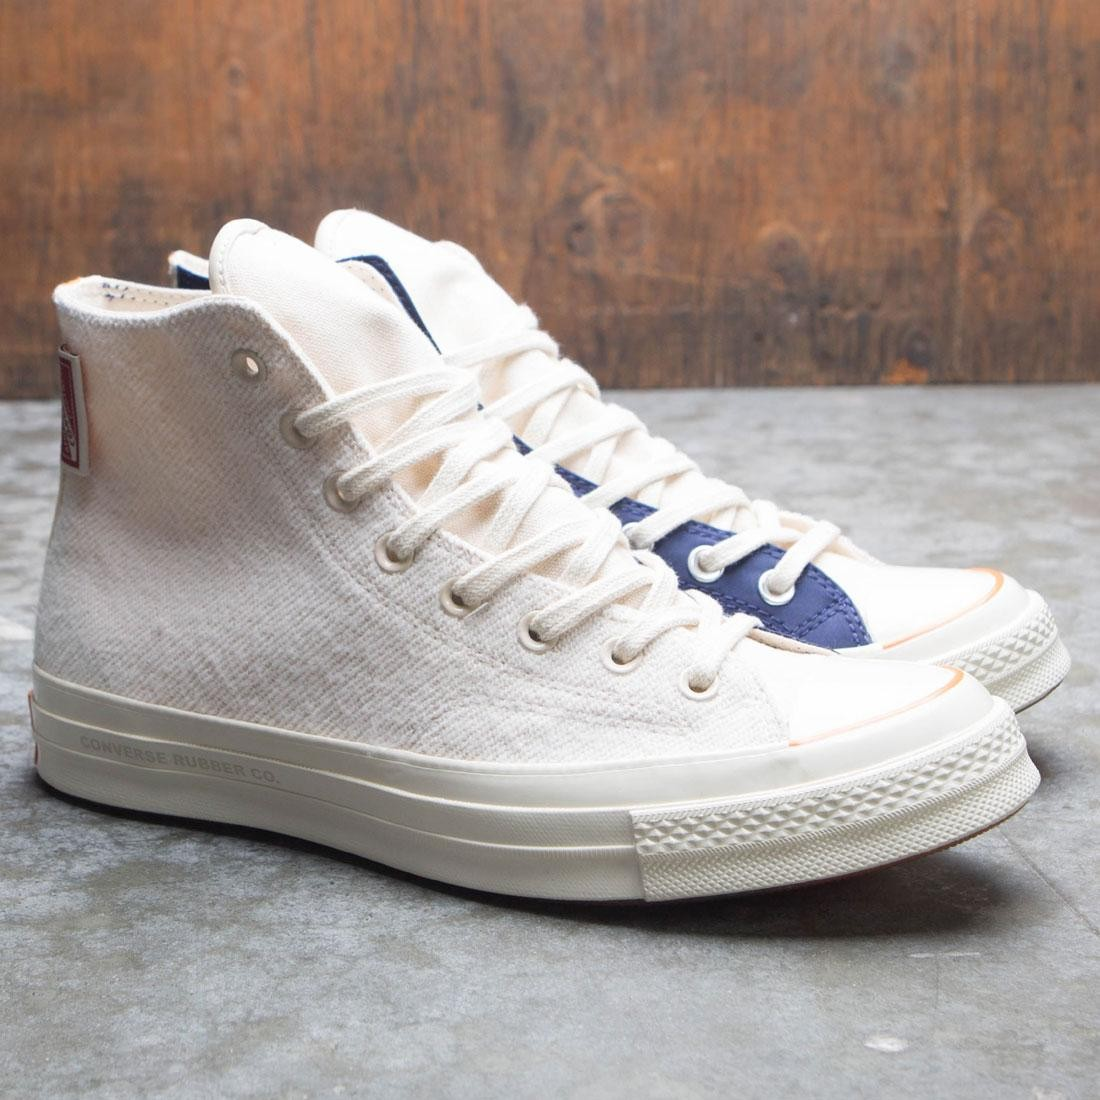 Converse x Foot Patrol Men Chuck 70 Hi Natural (white / ivory / blue)